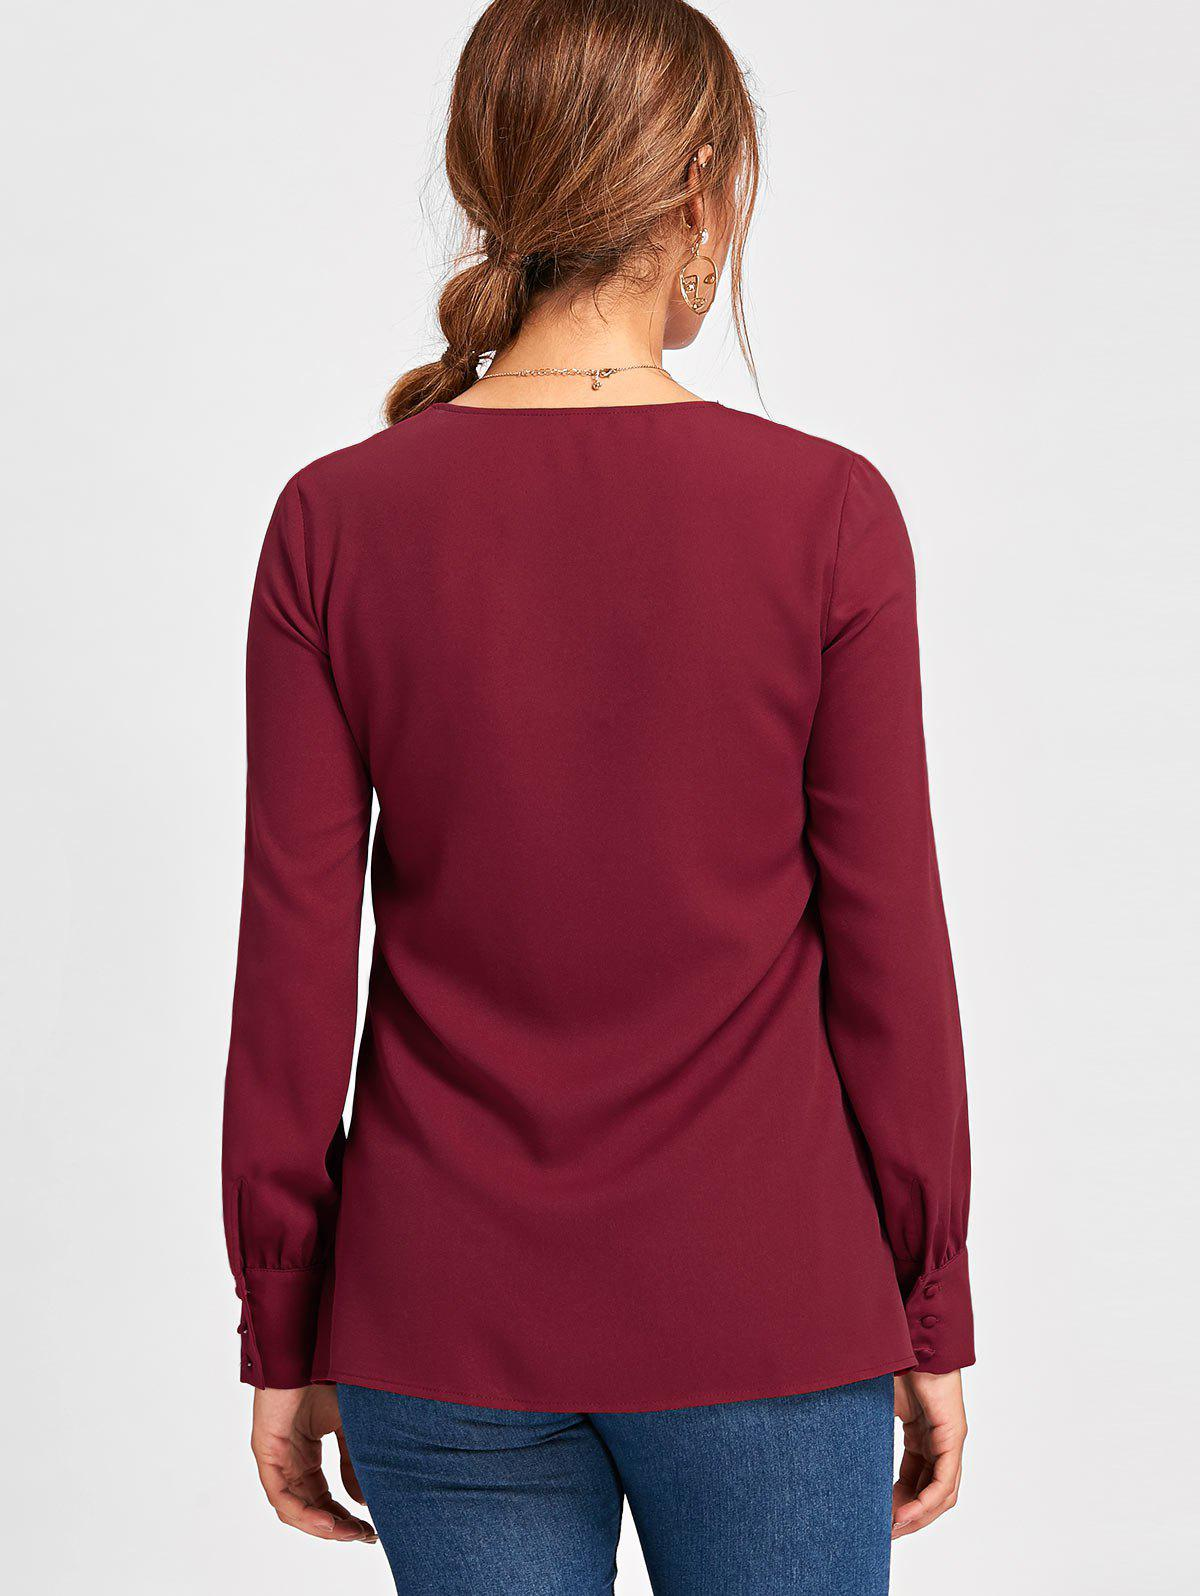 Metal Circle Plunging Neck Long Sleeve Blouse - WINE RED 2XL